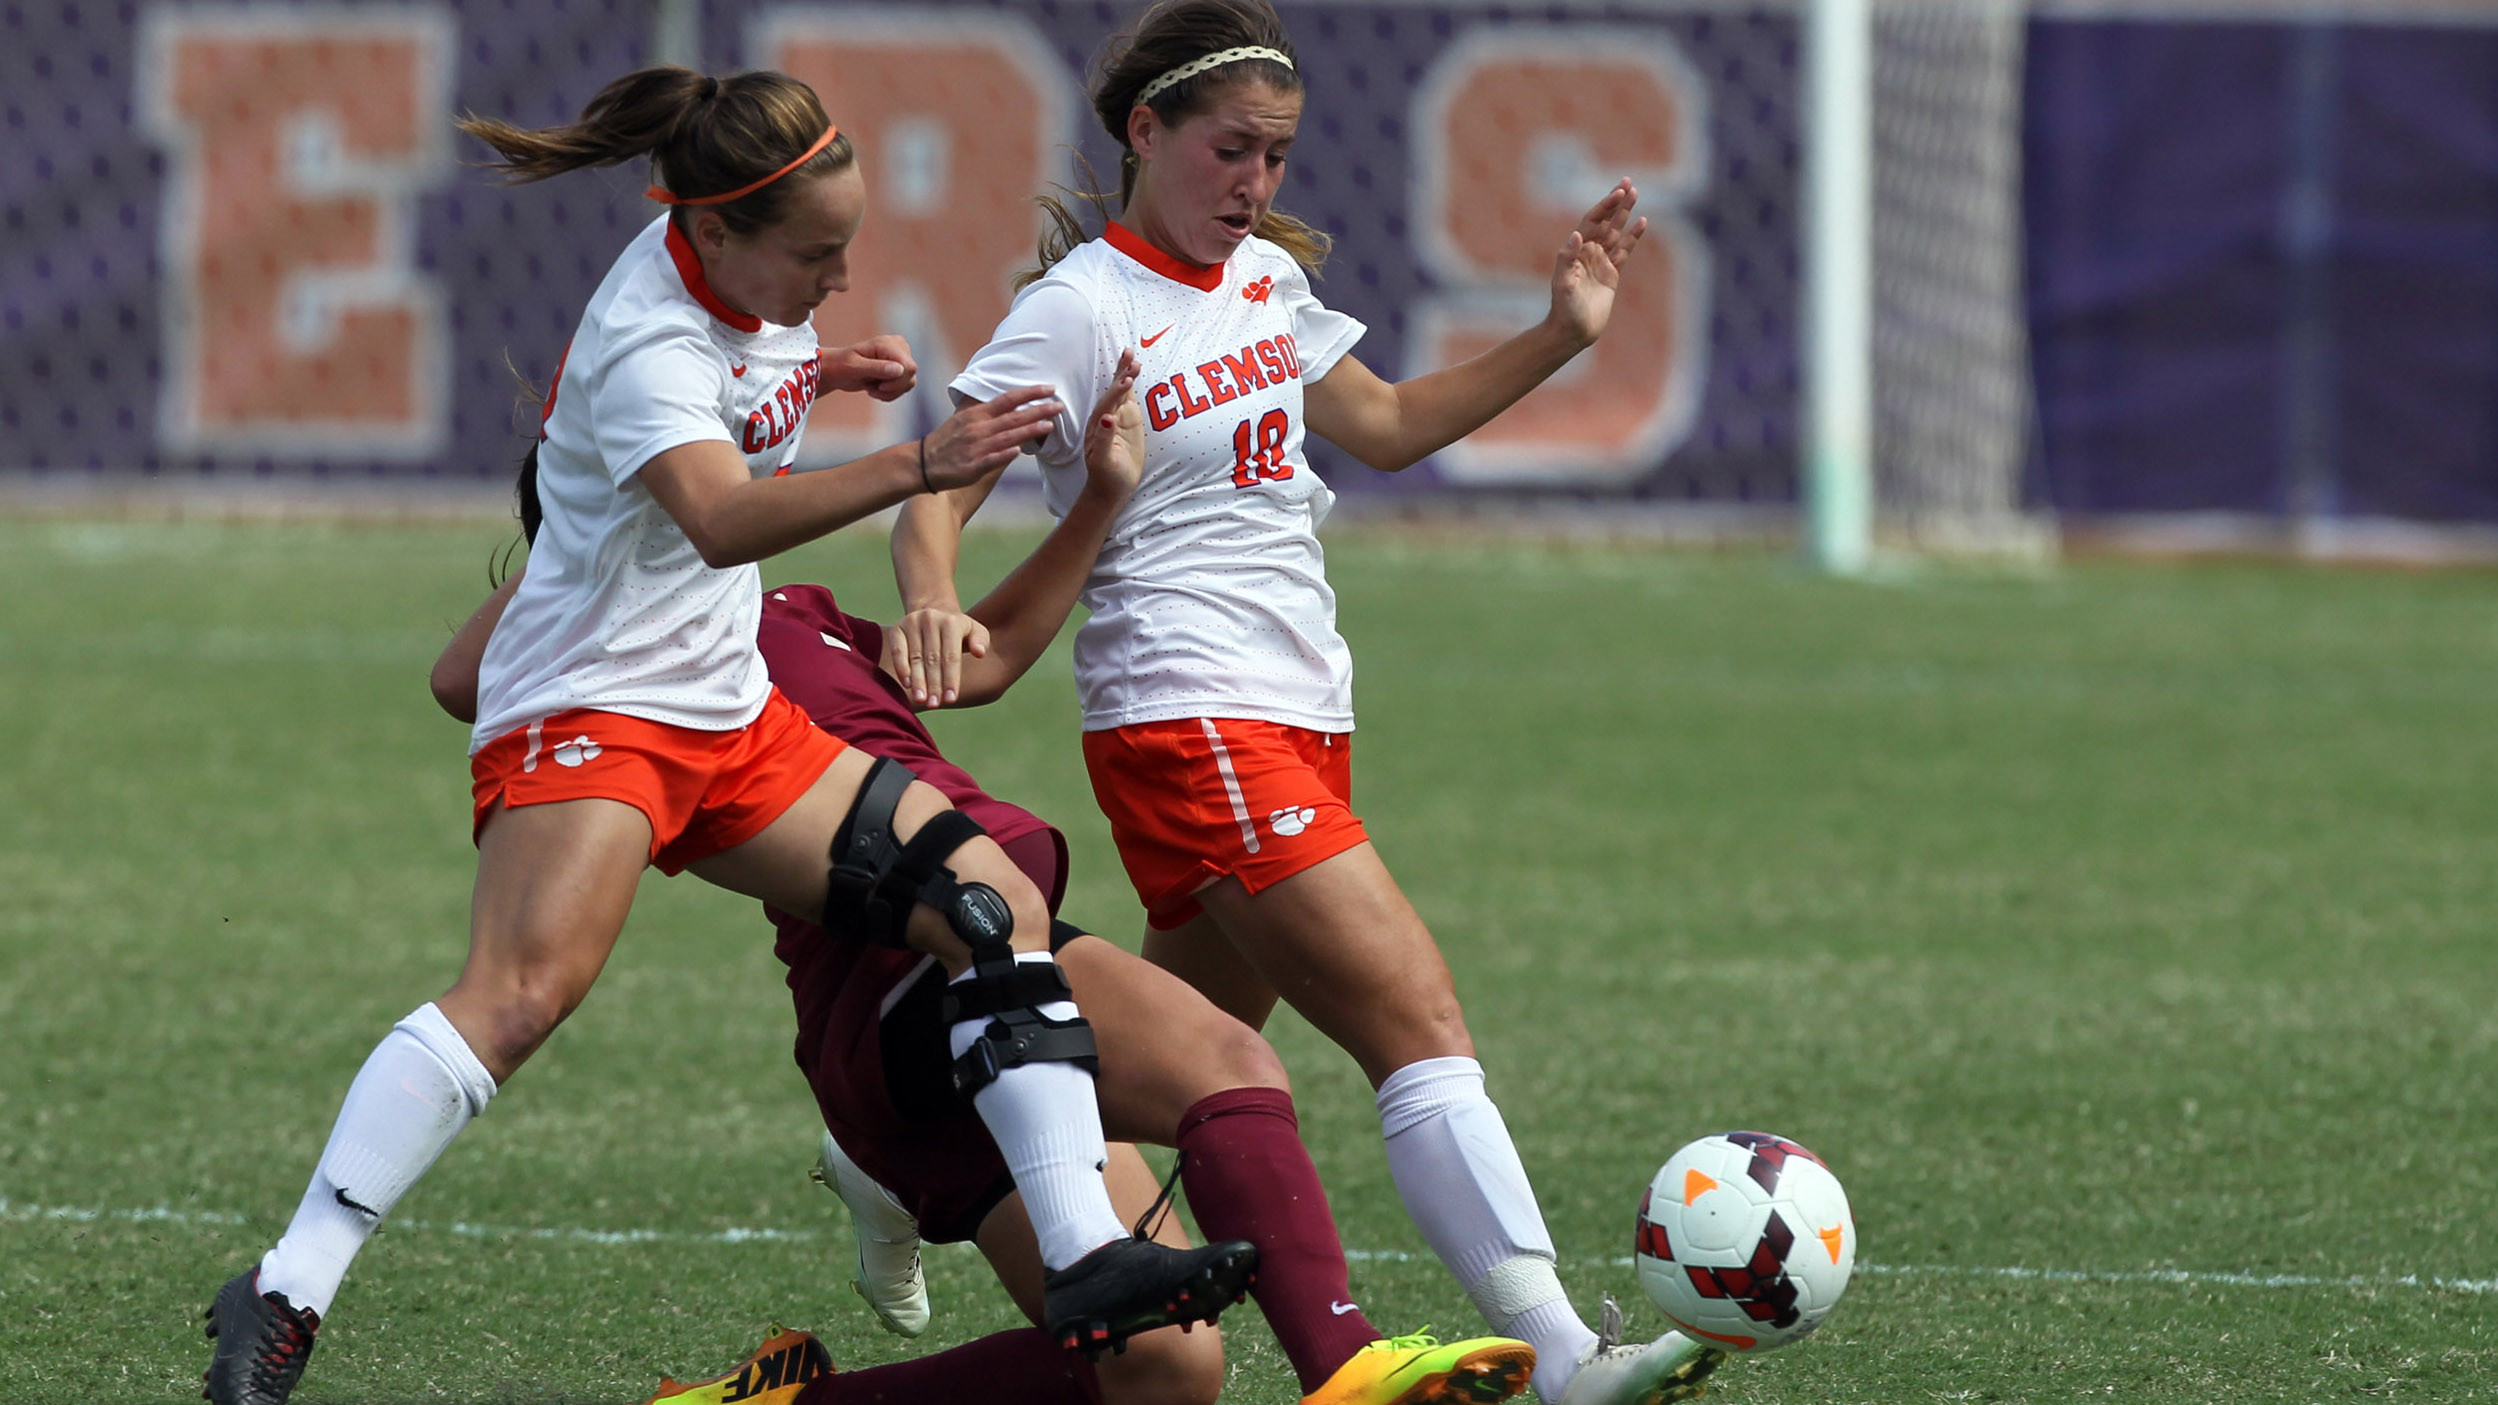 Tigers Travel to Coral Gables to Face Miami Thursday